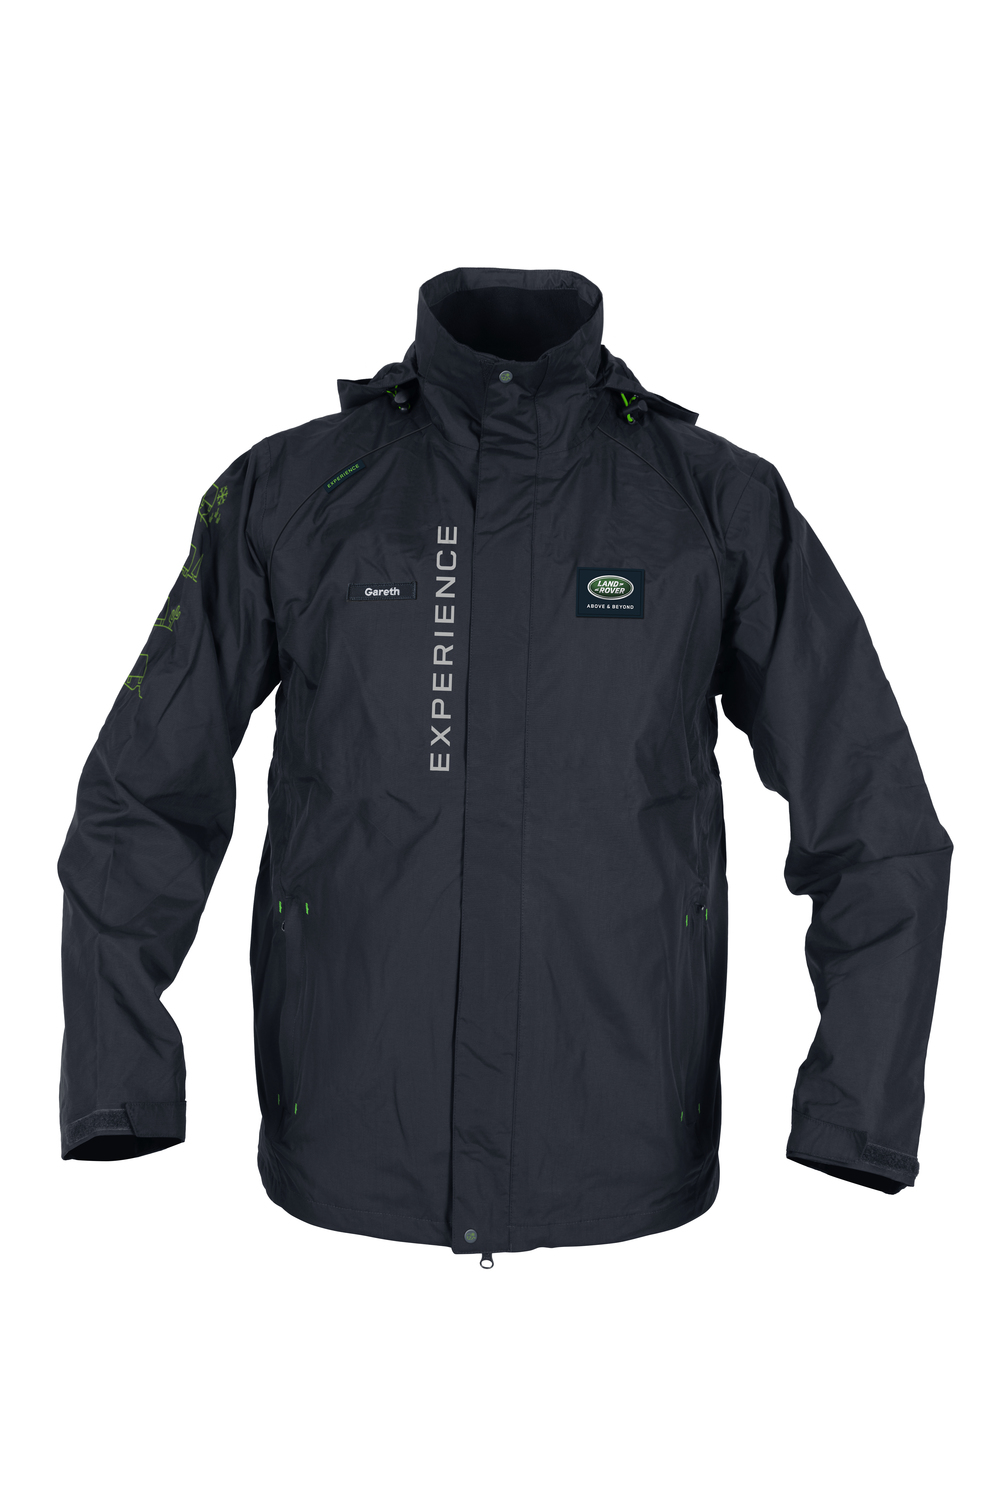 Outer Jacket Front.jpg